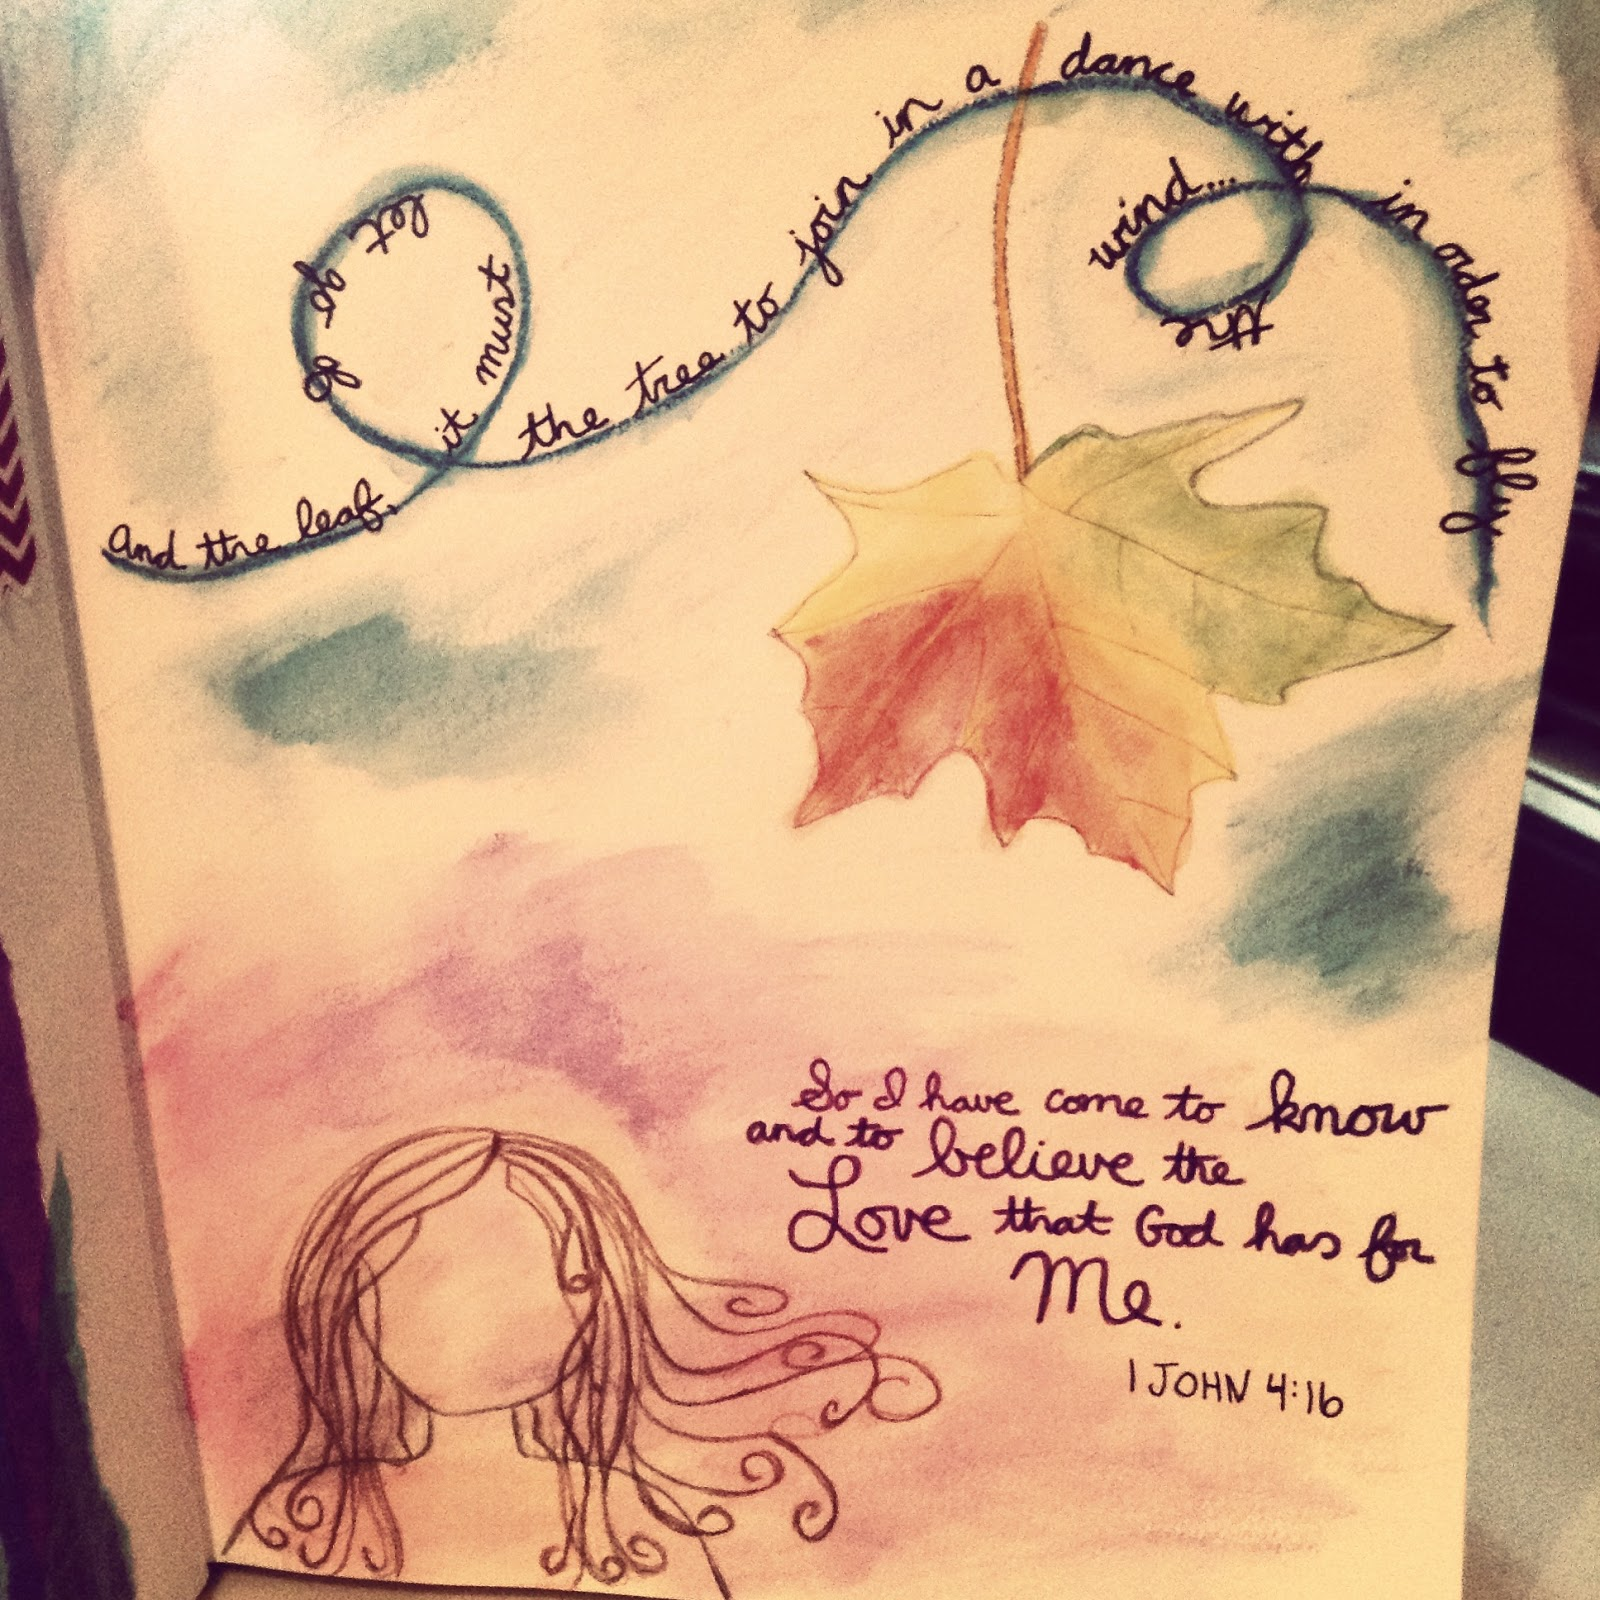 art journaling, finding hope, love